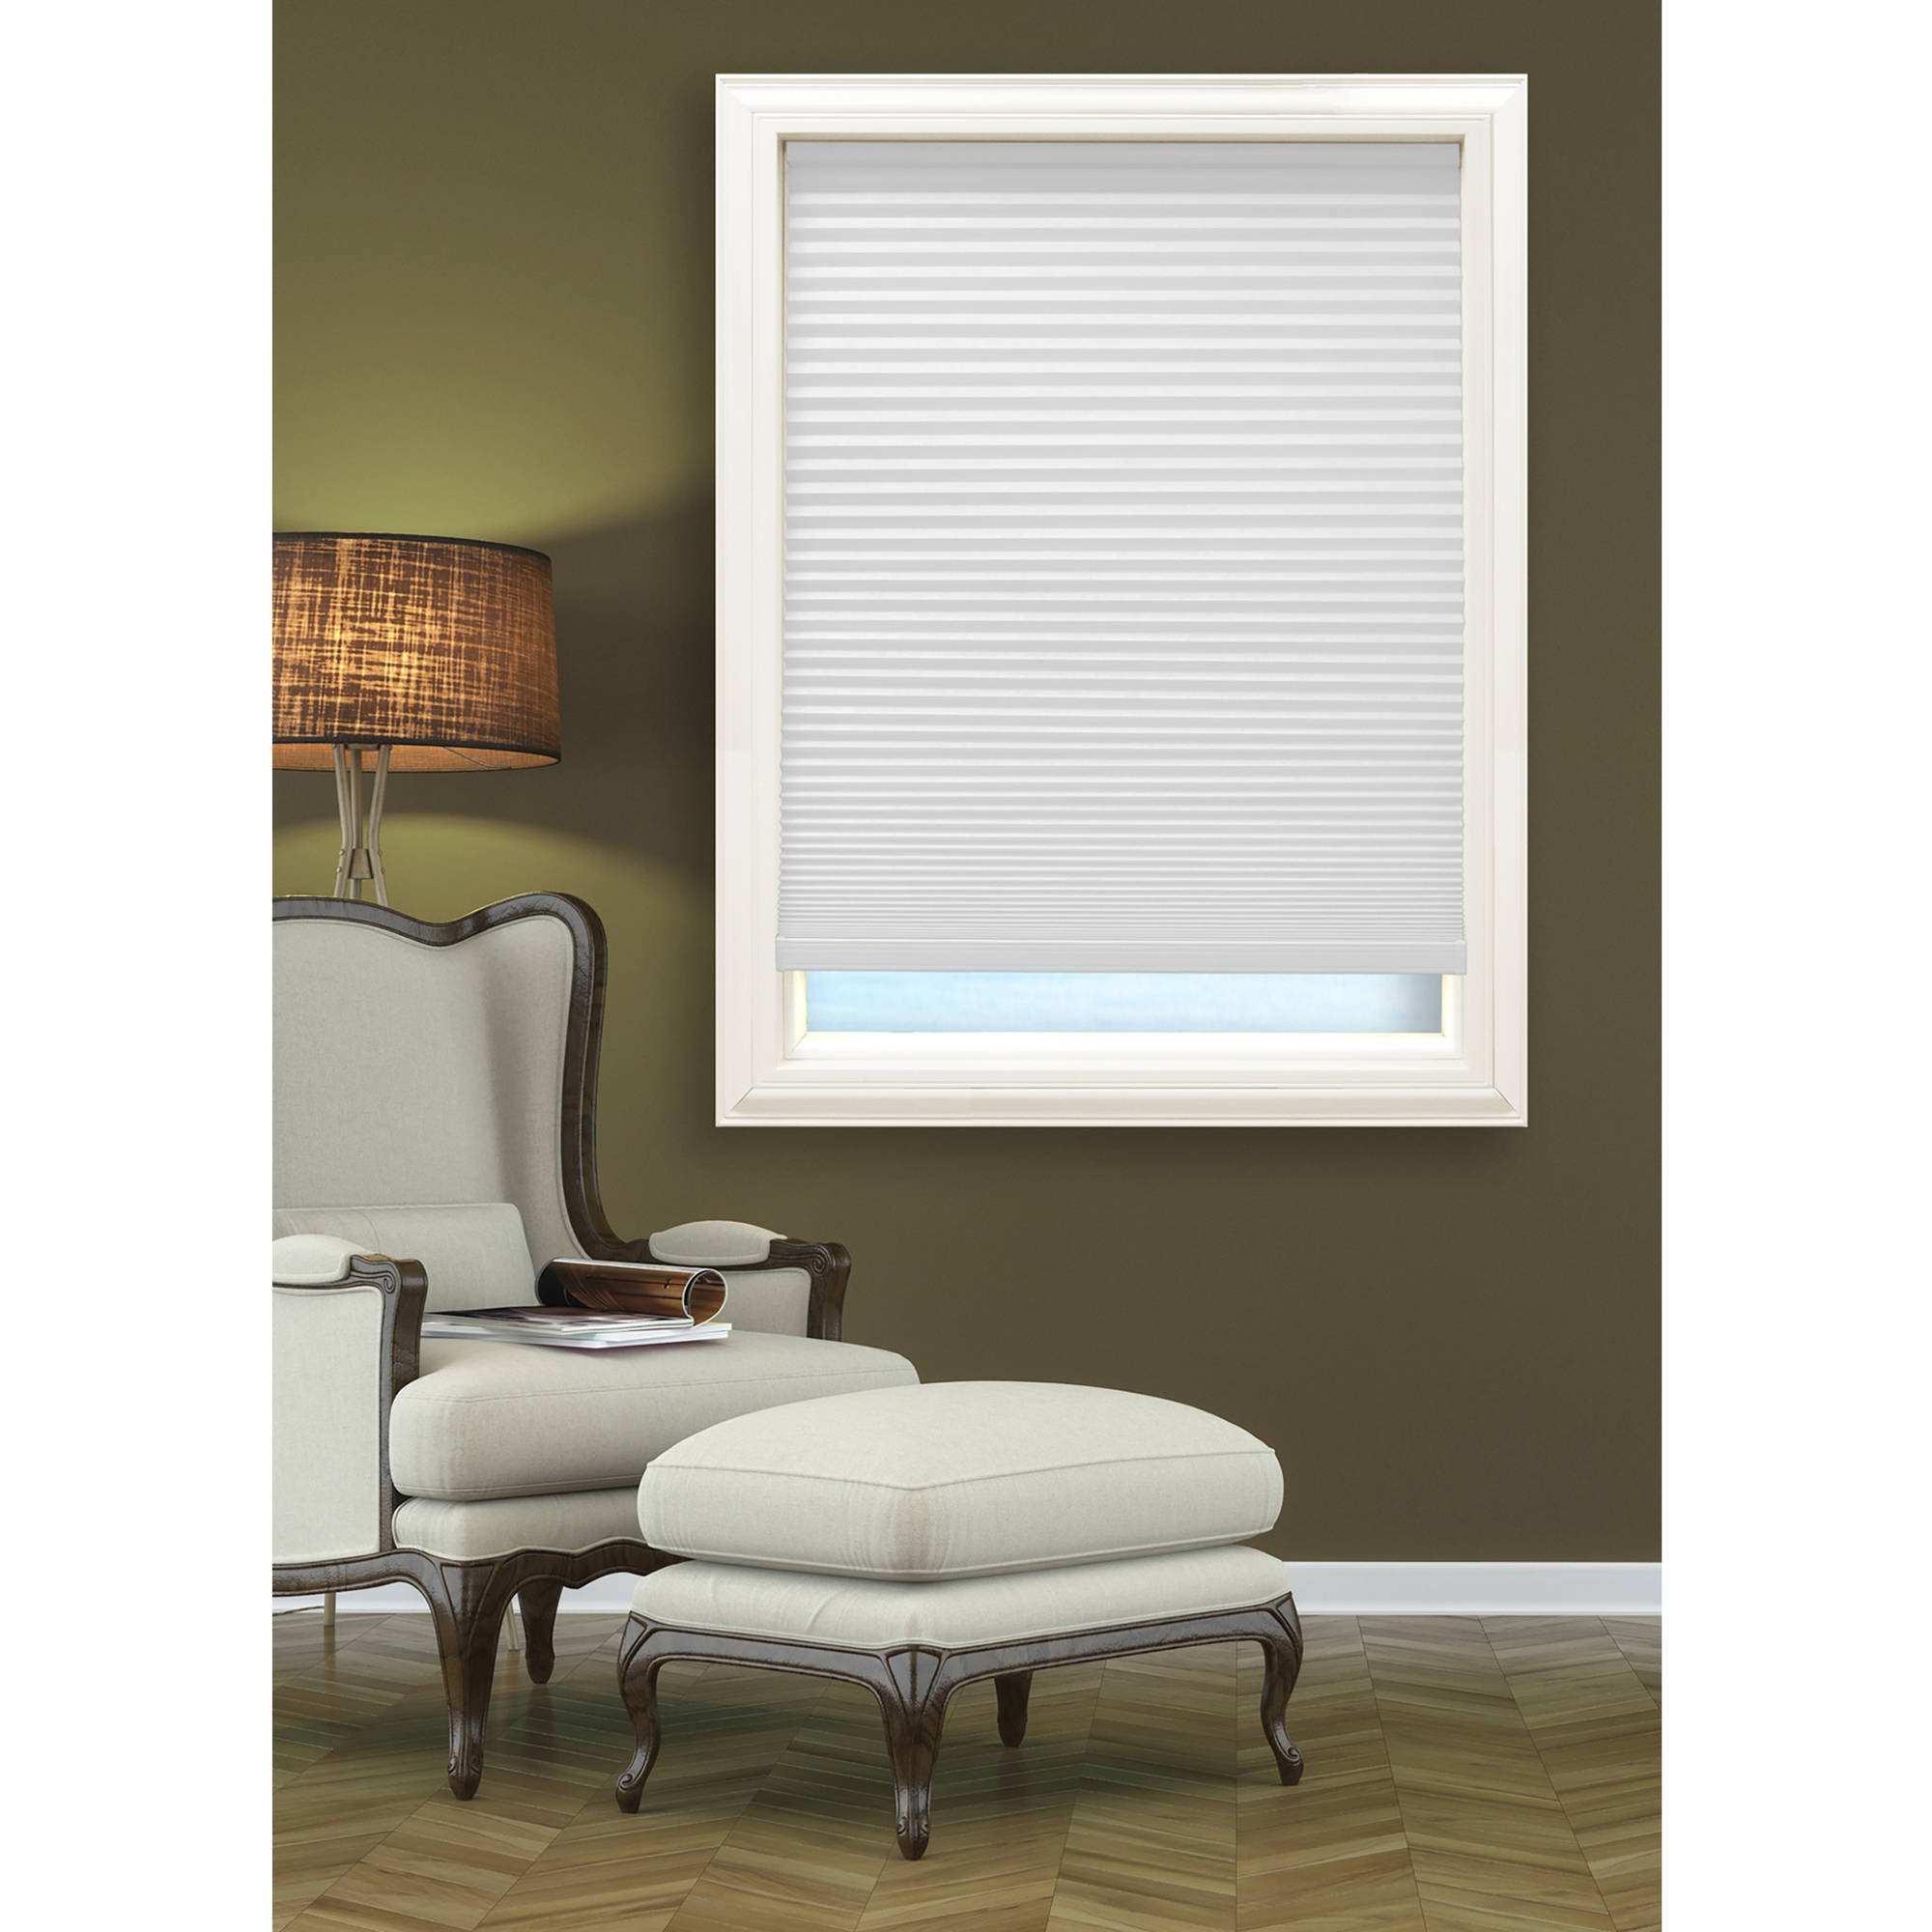 Richfield Studios Cordless Blackout Cellular Shade, Cool White